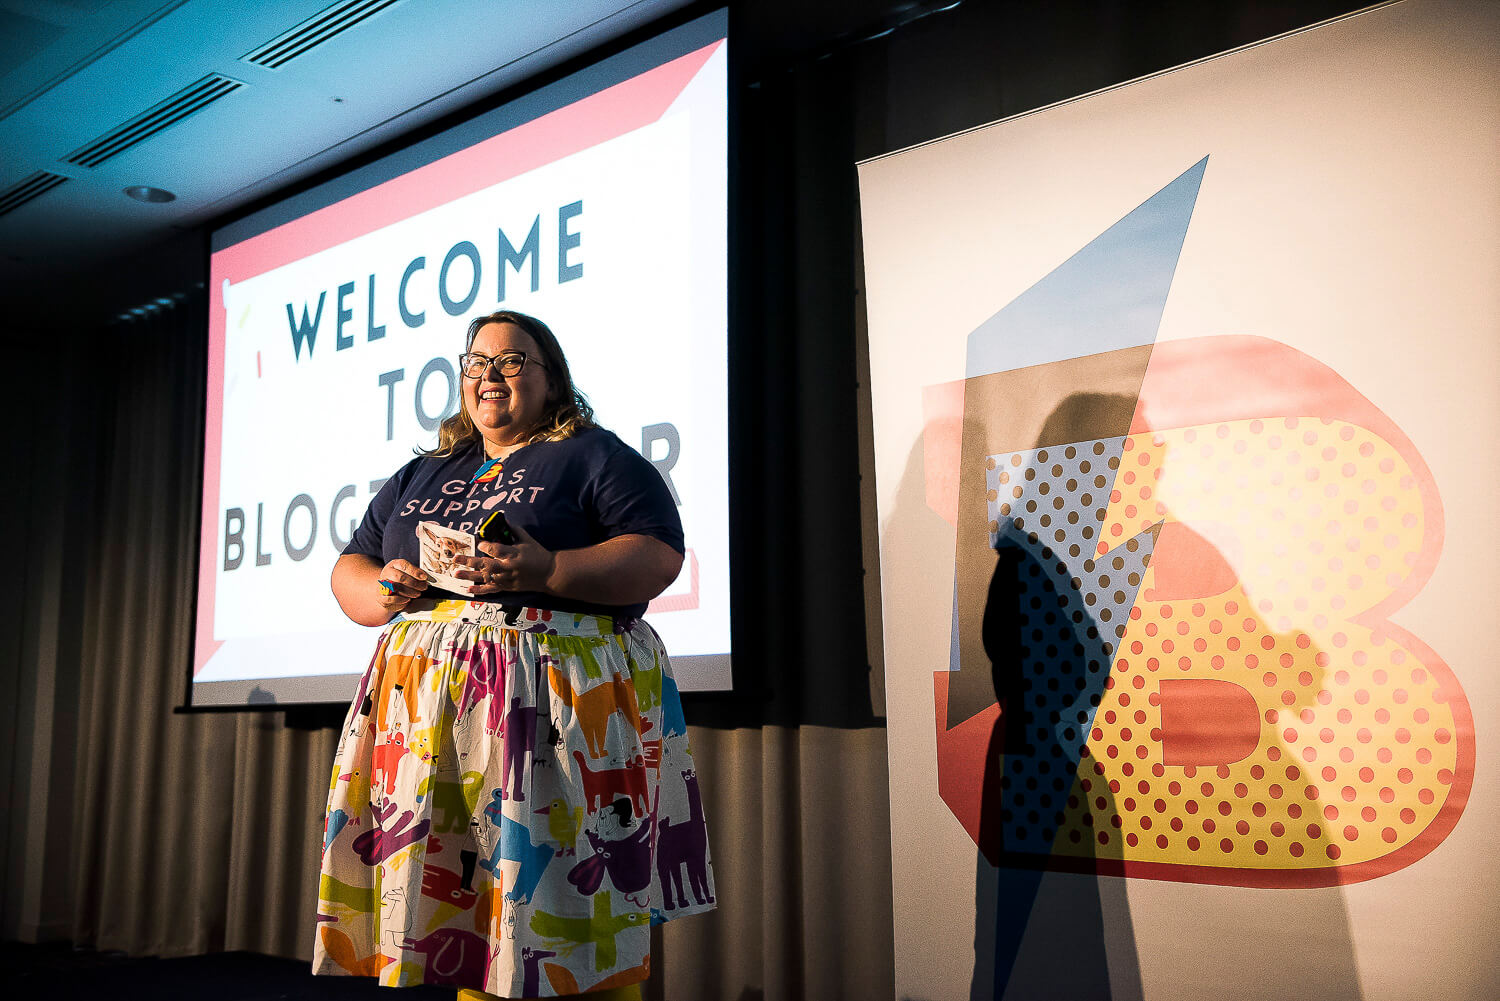 Kat Molesworth Introducing Blogtacular 2018 - a day of colour, energy, creativity and good vibes Image credit:Blogtacular 2018 © Will Ireland